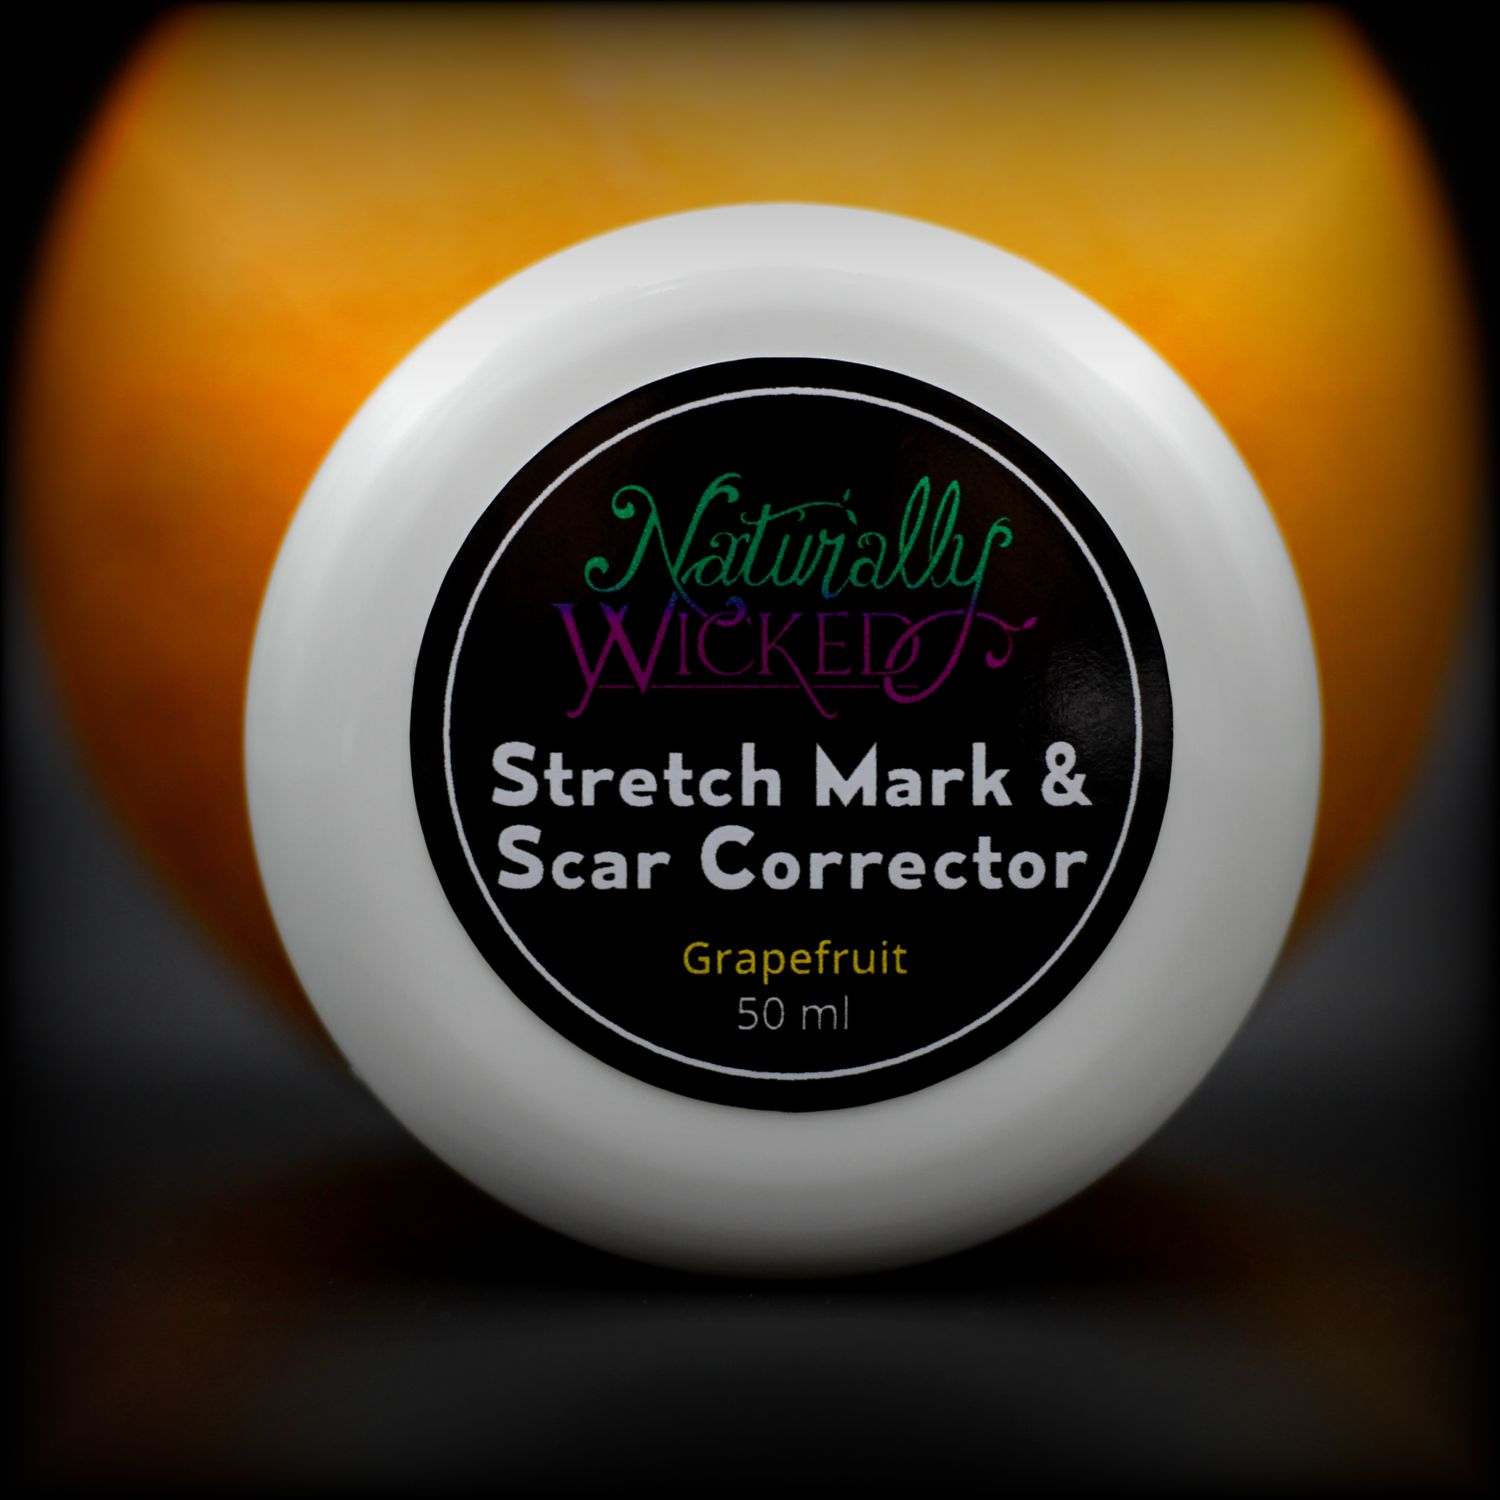 Naturally Wicked Stretch Mark & Scar Corrector Lid In Front Of A Whole Orange Grapefruit